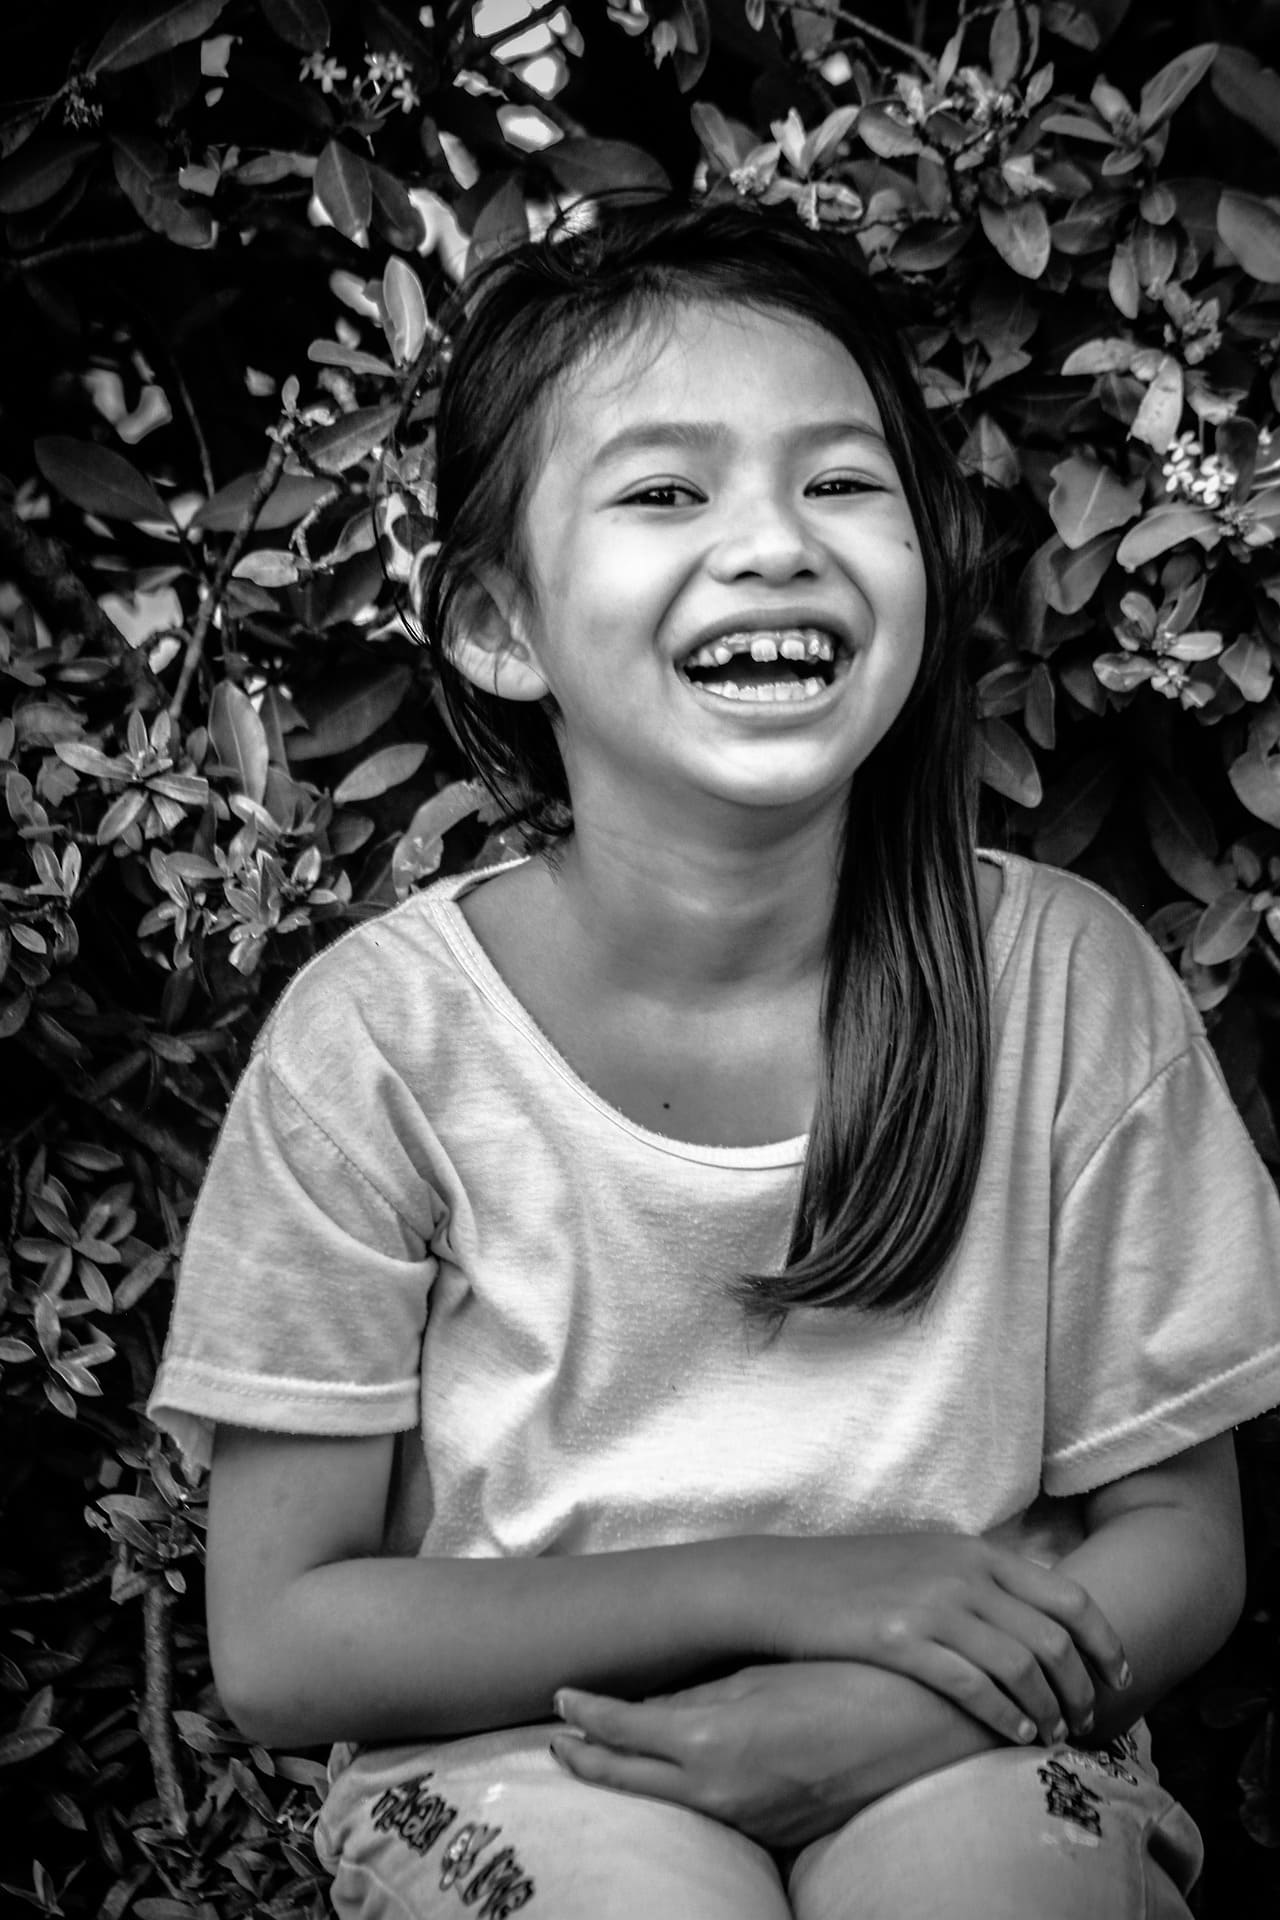 Little girl laughing | Source: Pixabay